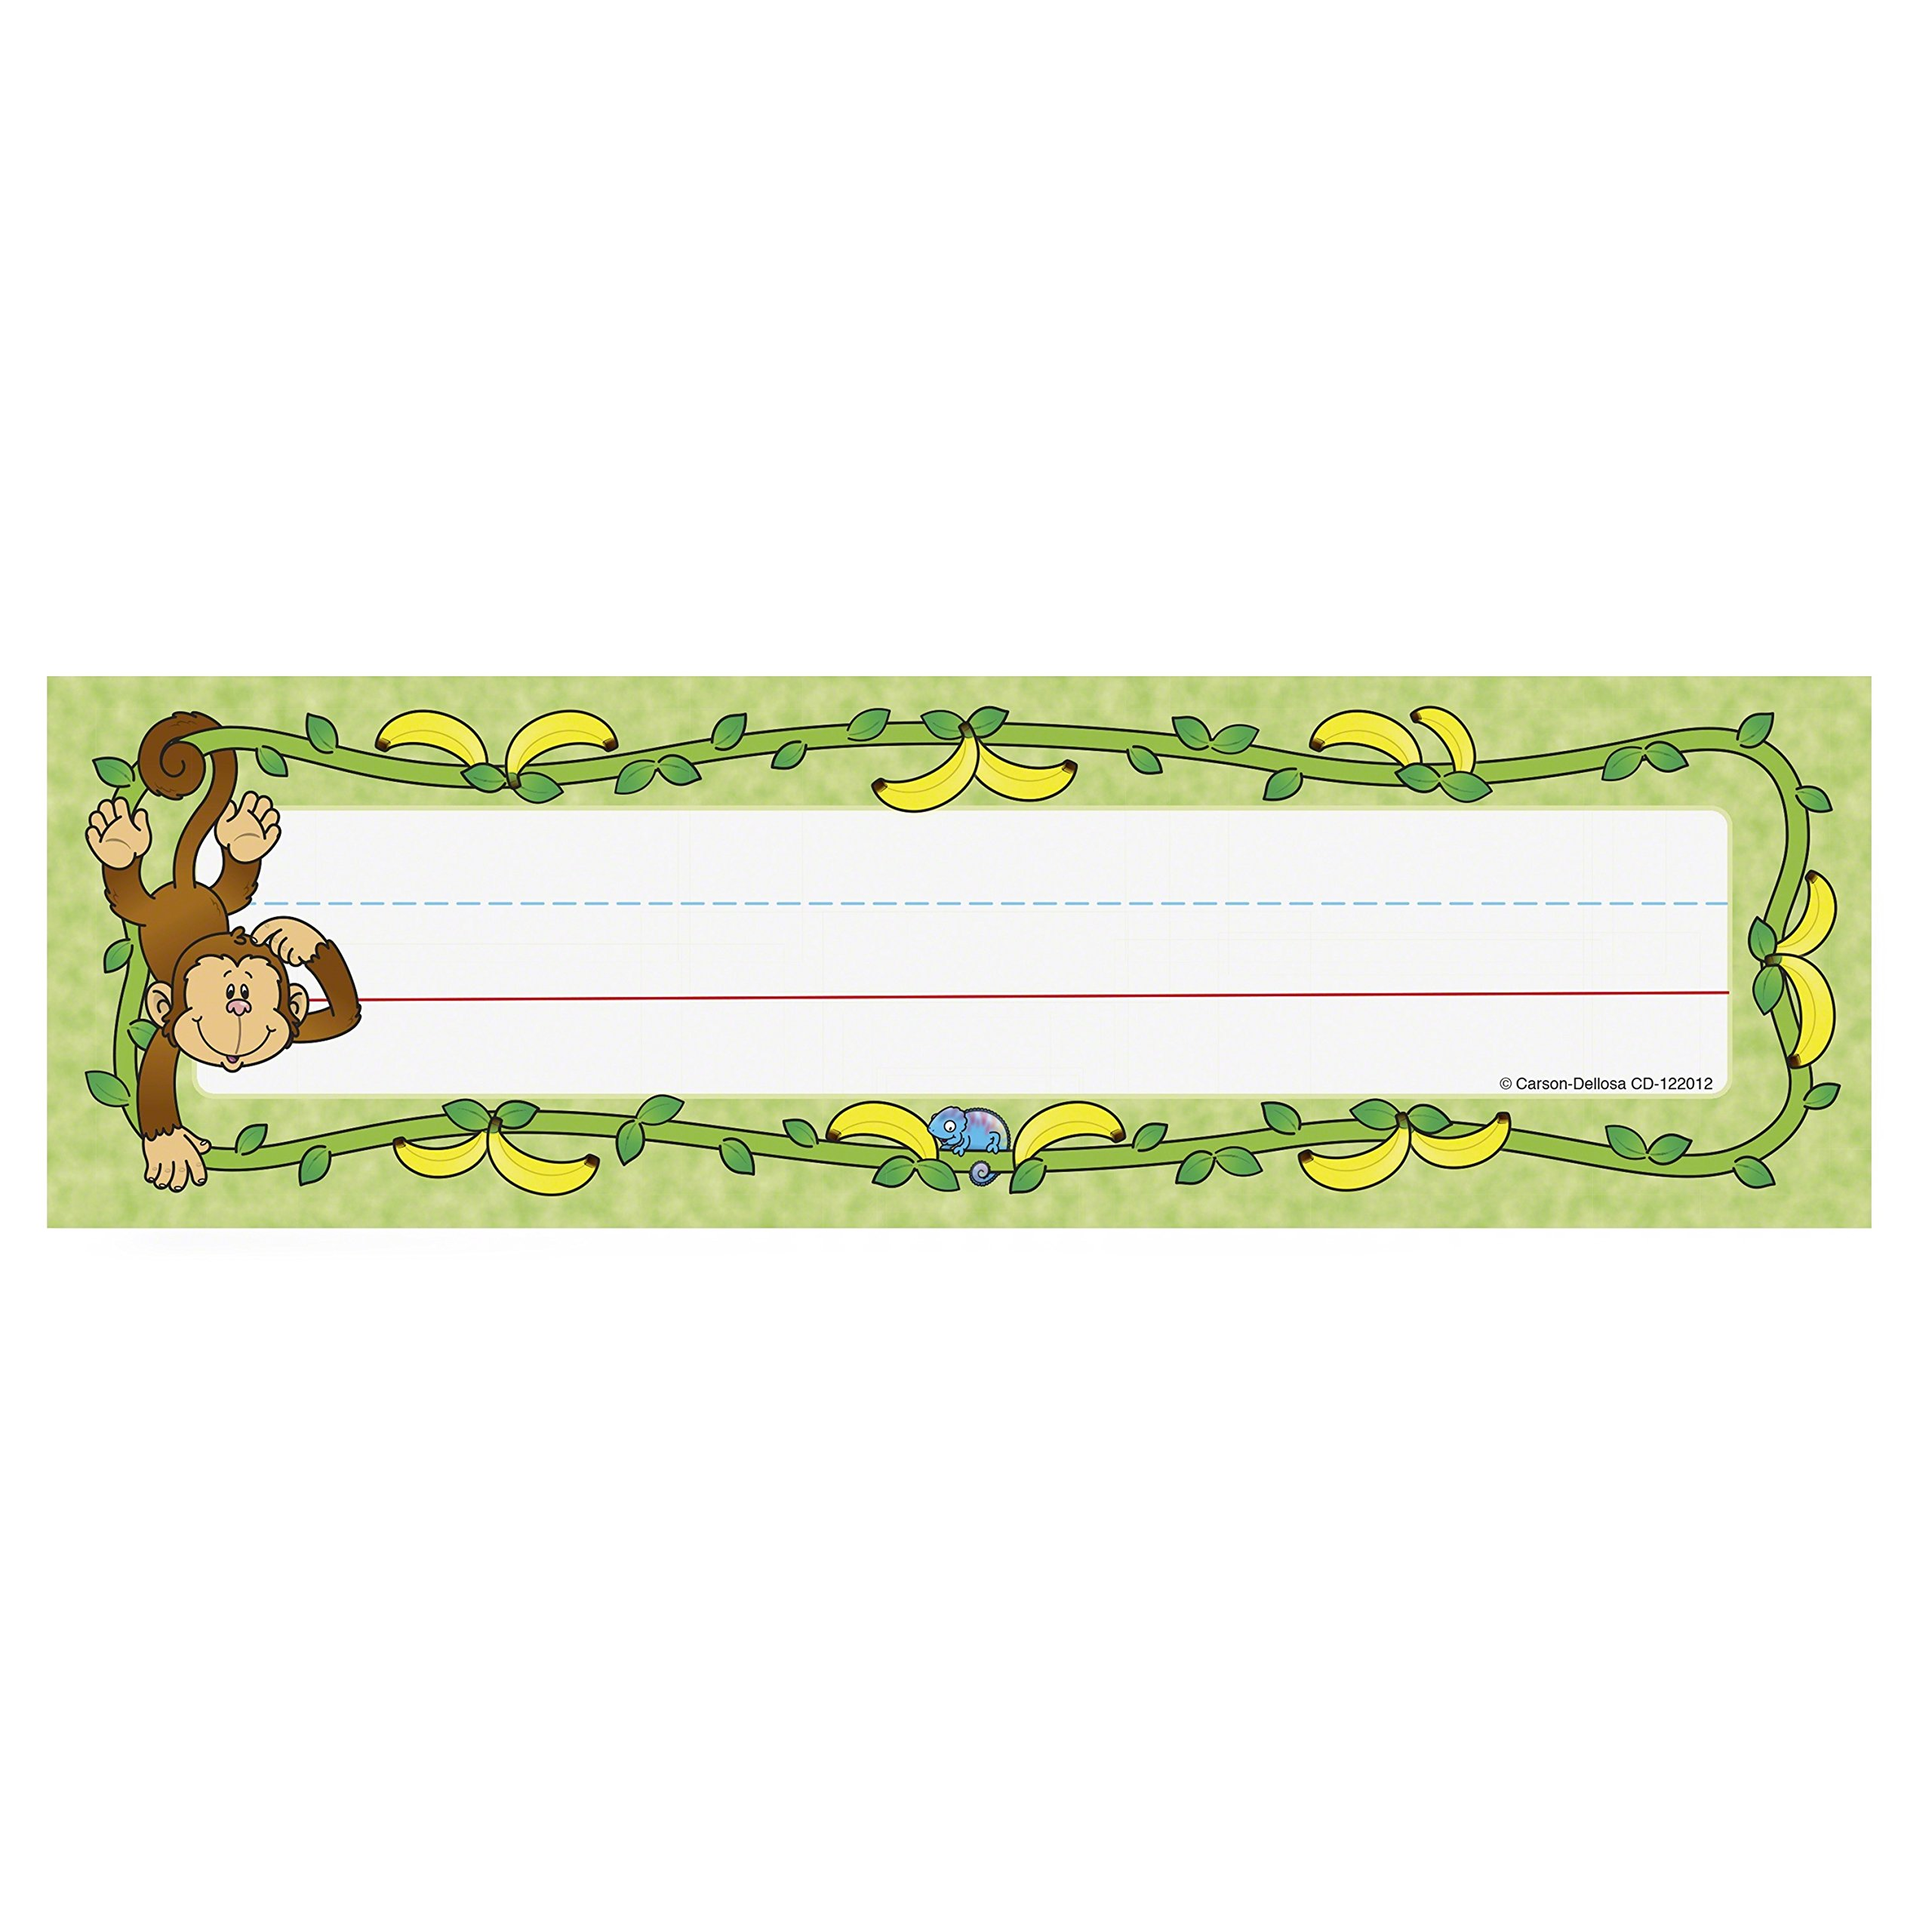 Amazon Com Carson Dellosa Monkey Nameplates 122012 Name Plates Office Products